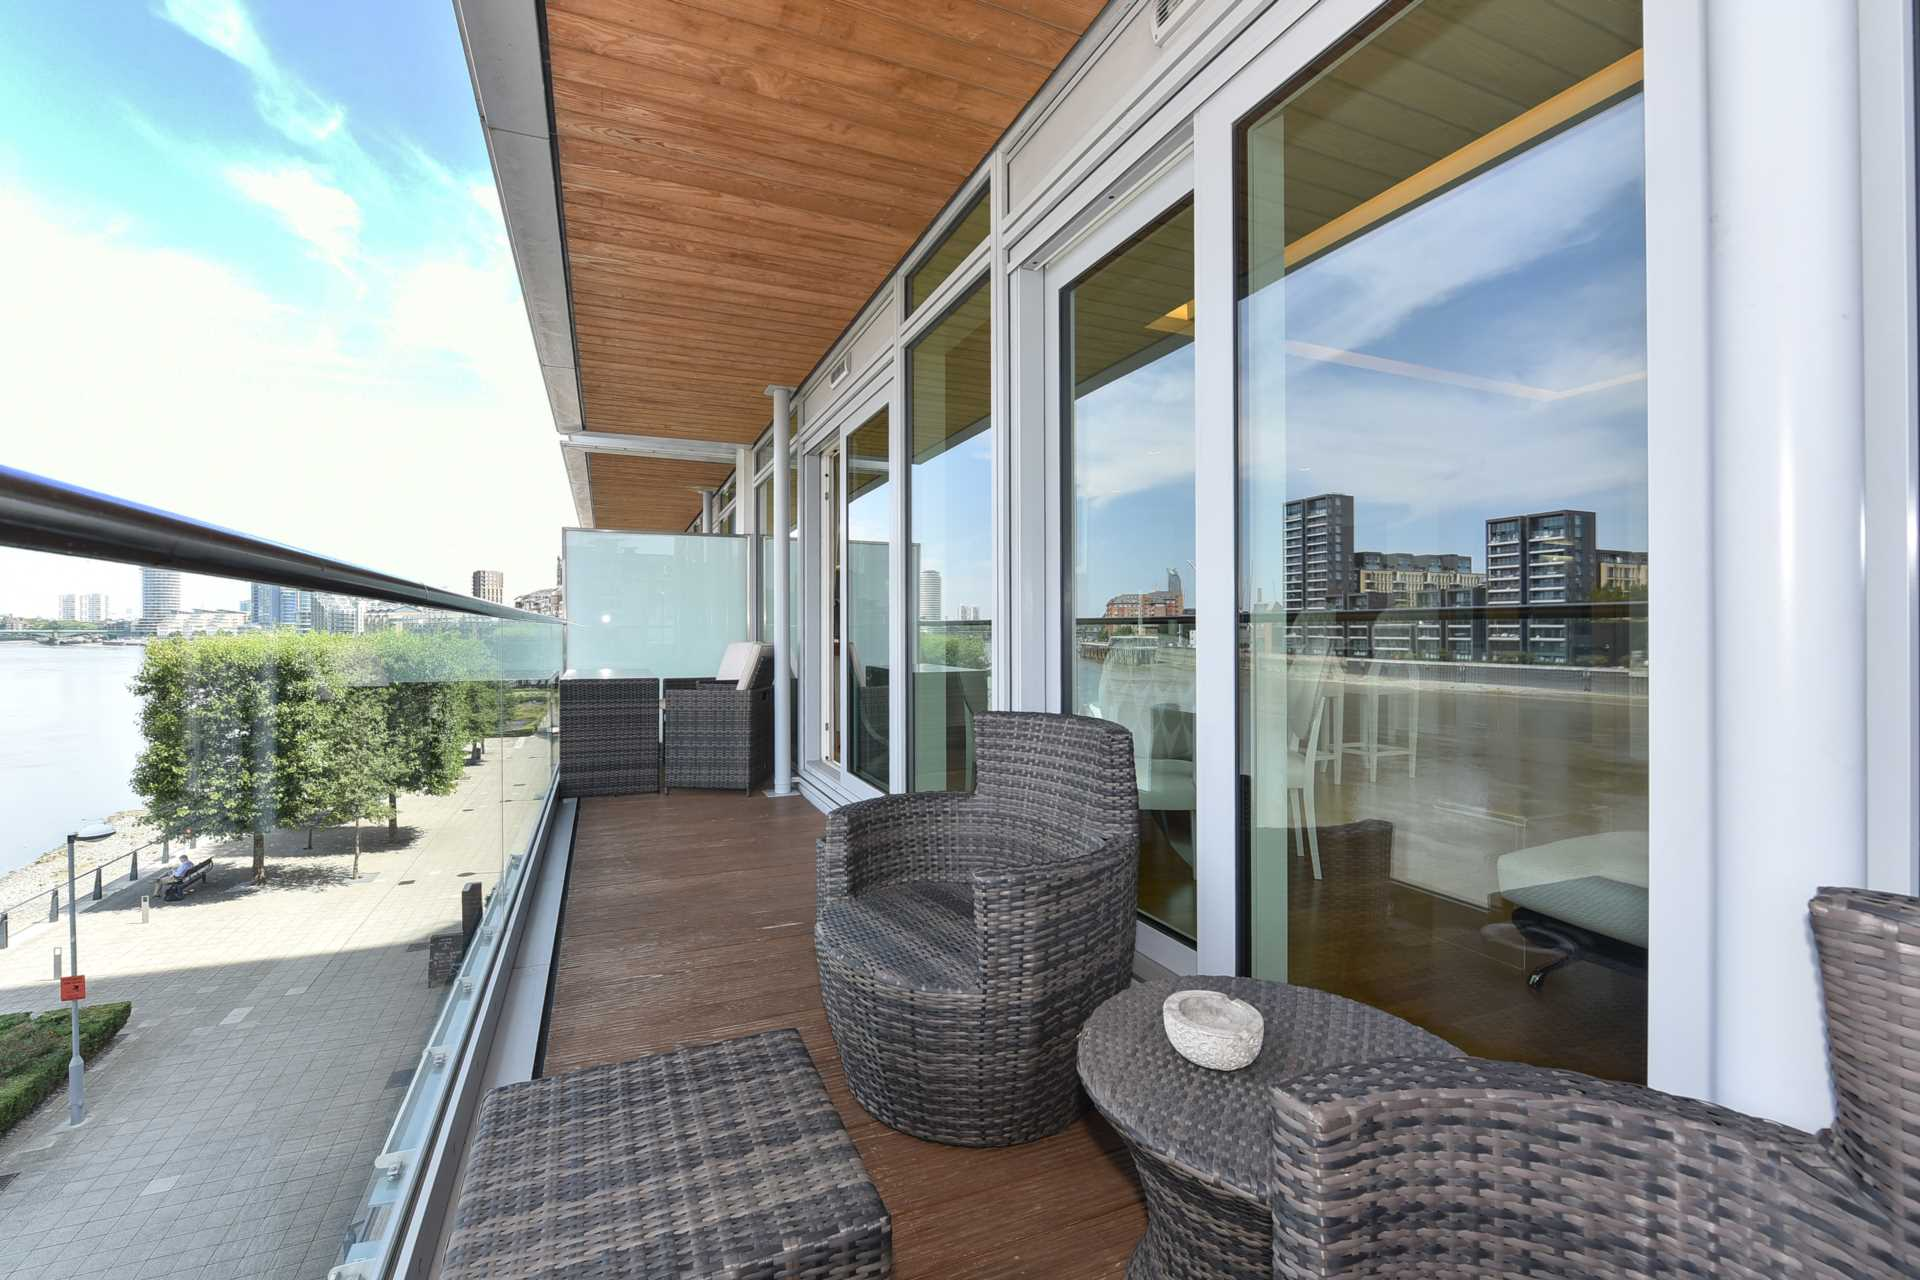 Ascensis Tower, Battersea Reach SW18, Image 19